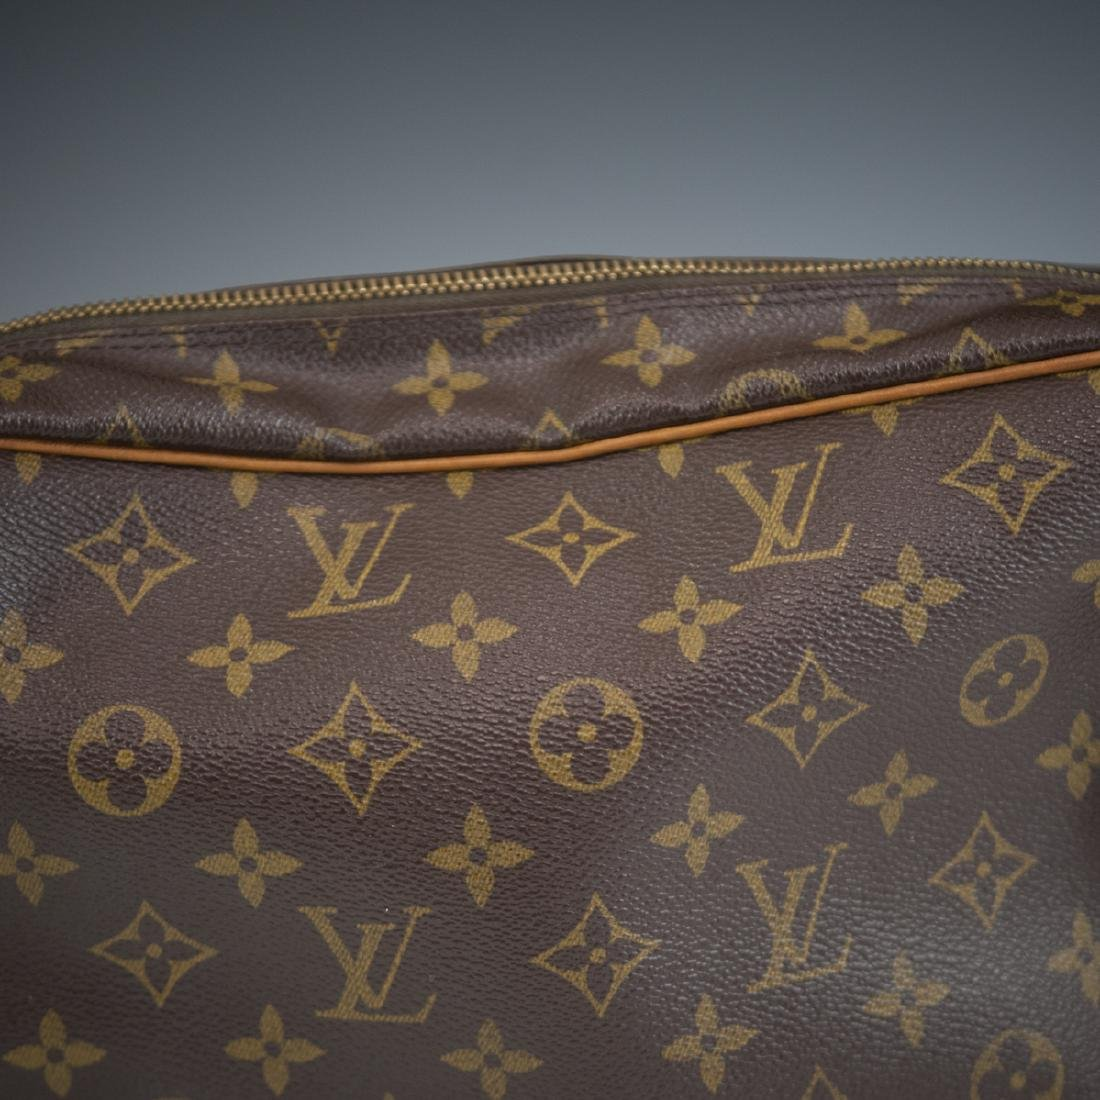 Louis Vuitton Canvas Nile Shoulder Bag - 4